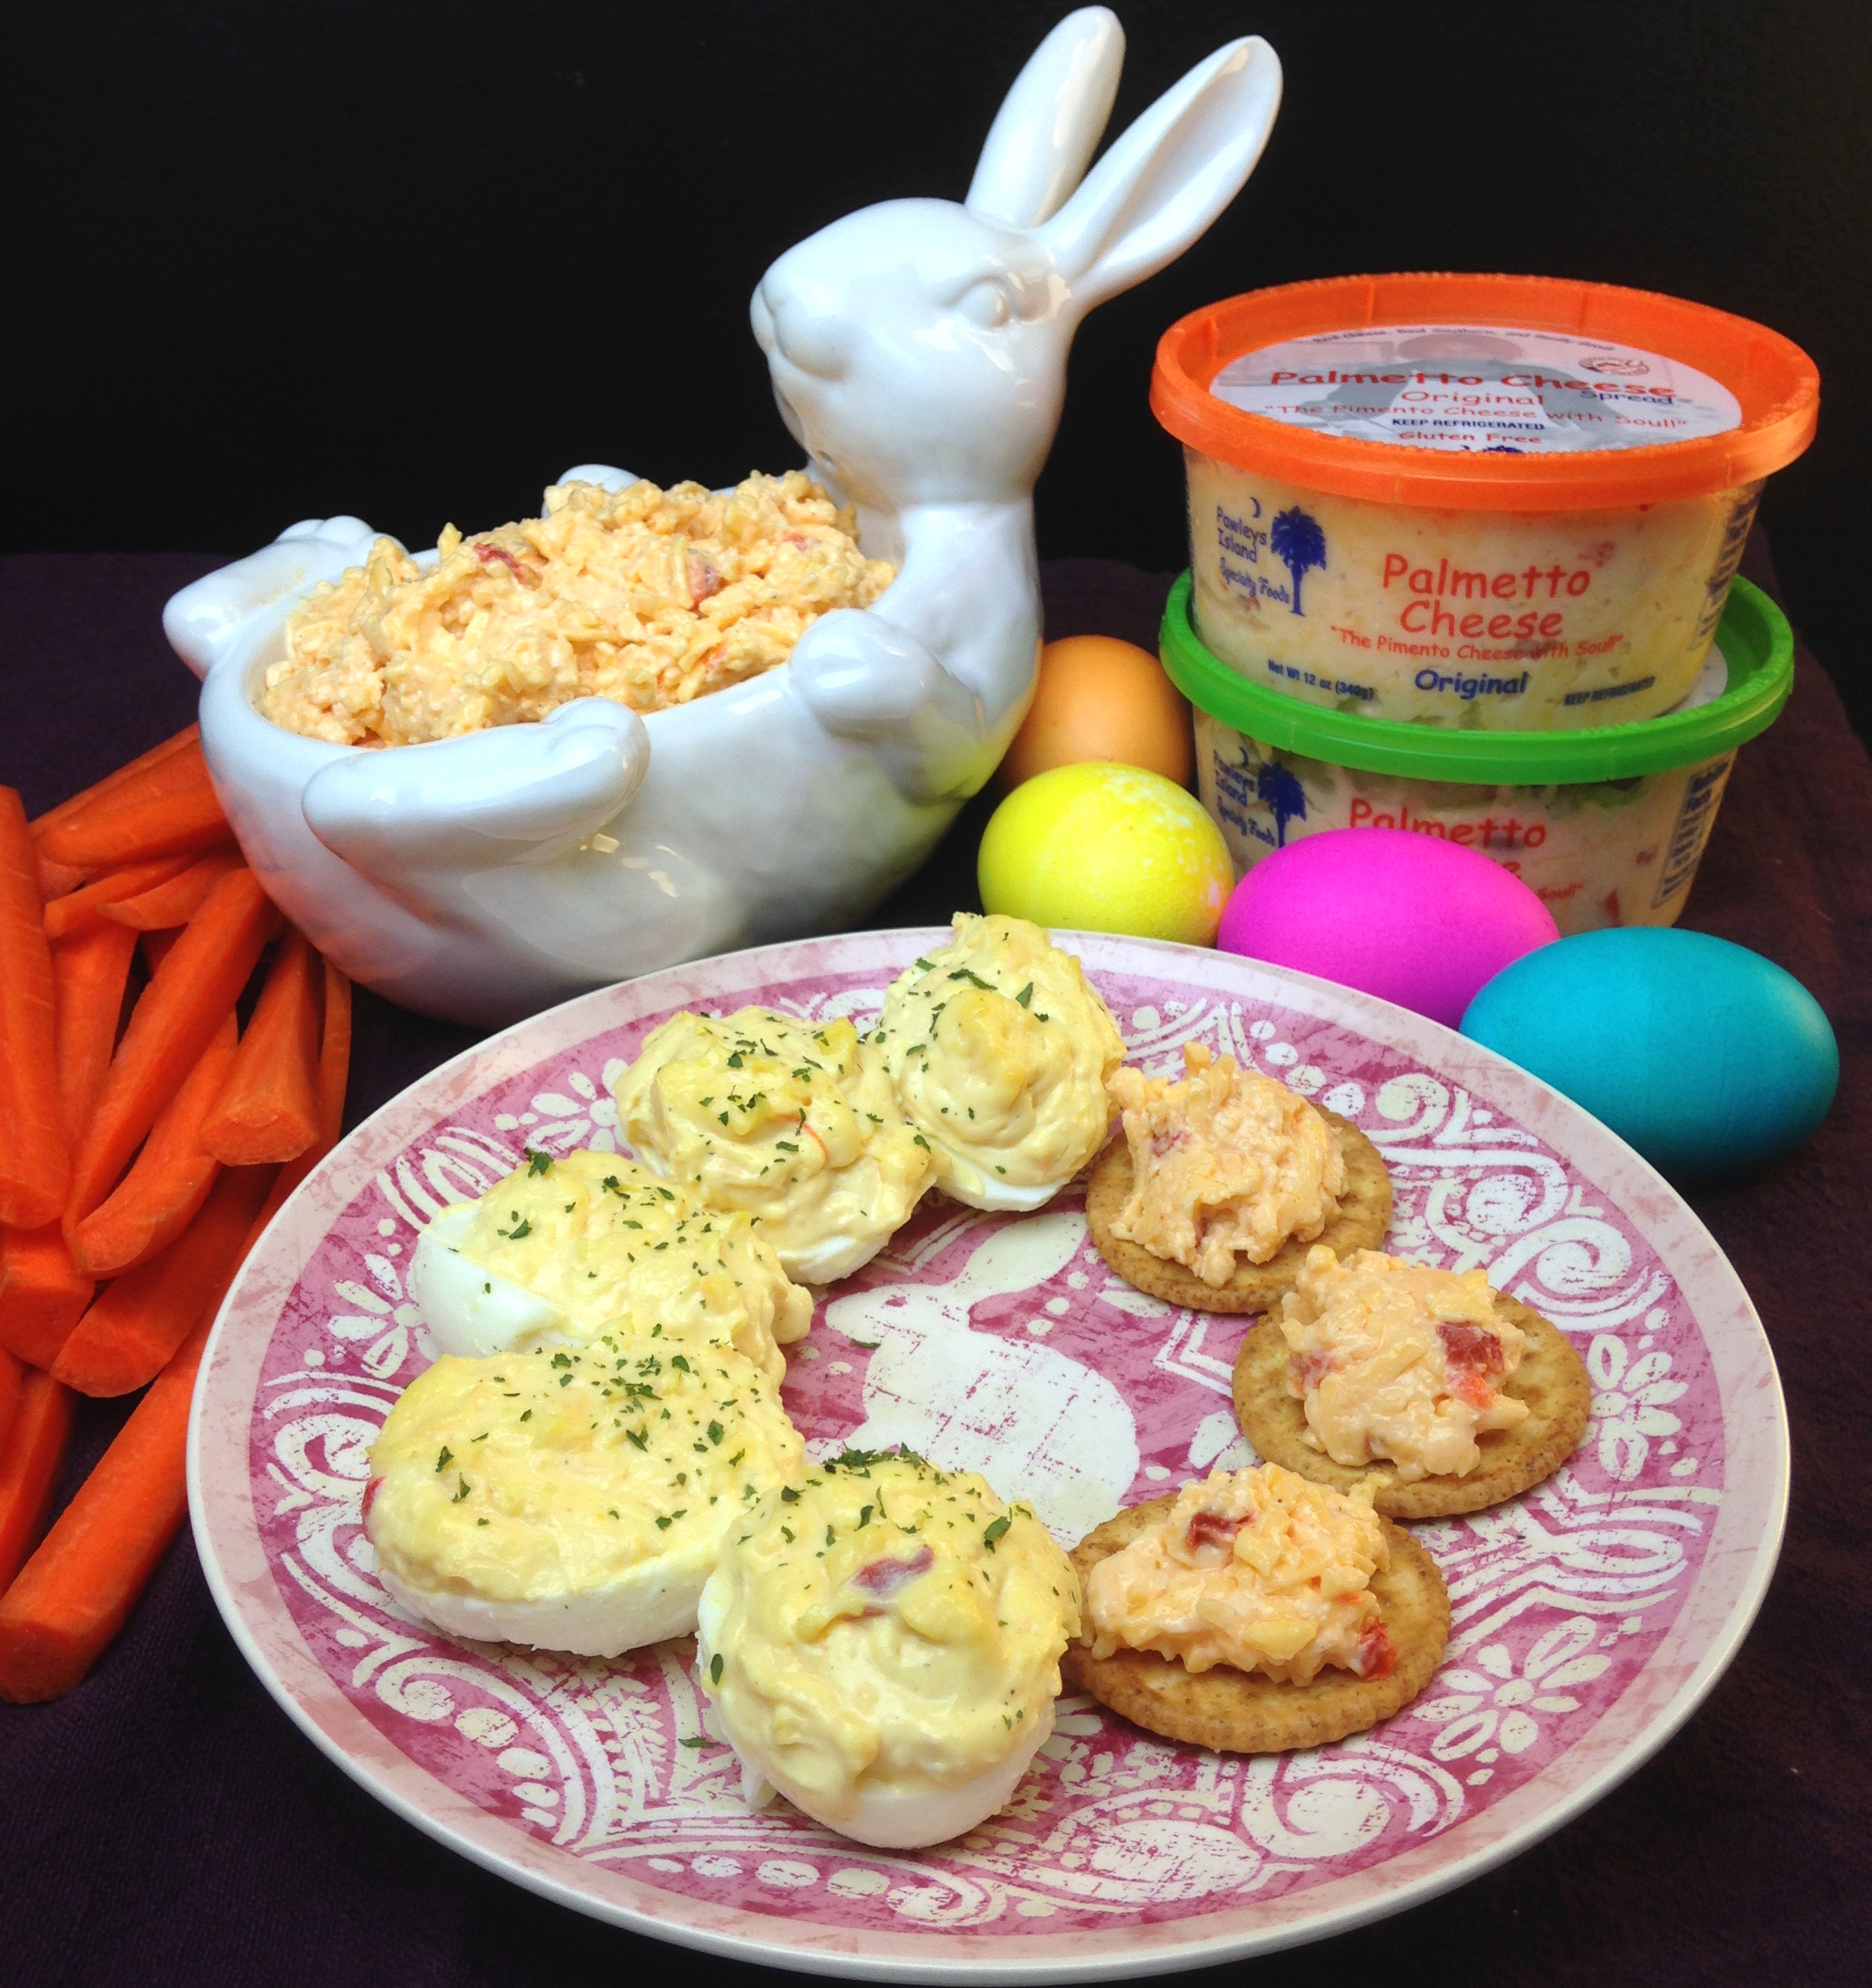 Palmetto Cheese deviled eggs with pimento cheese